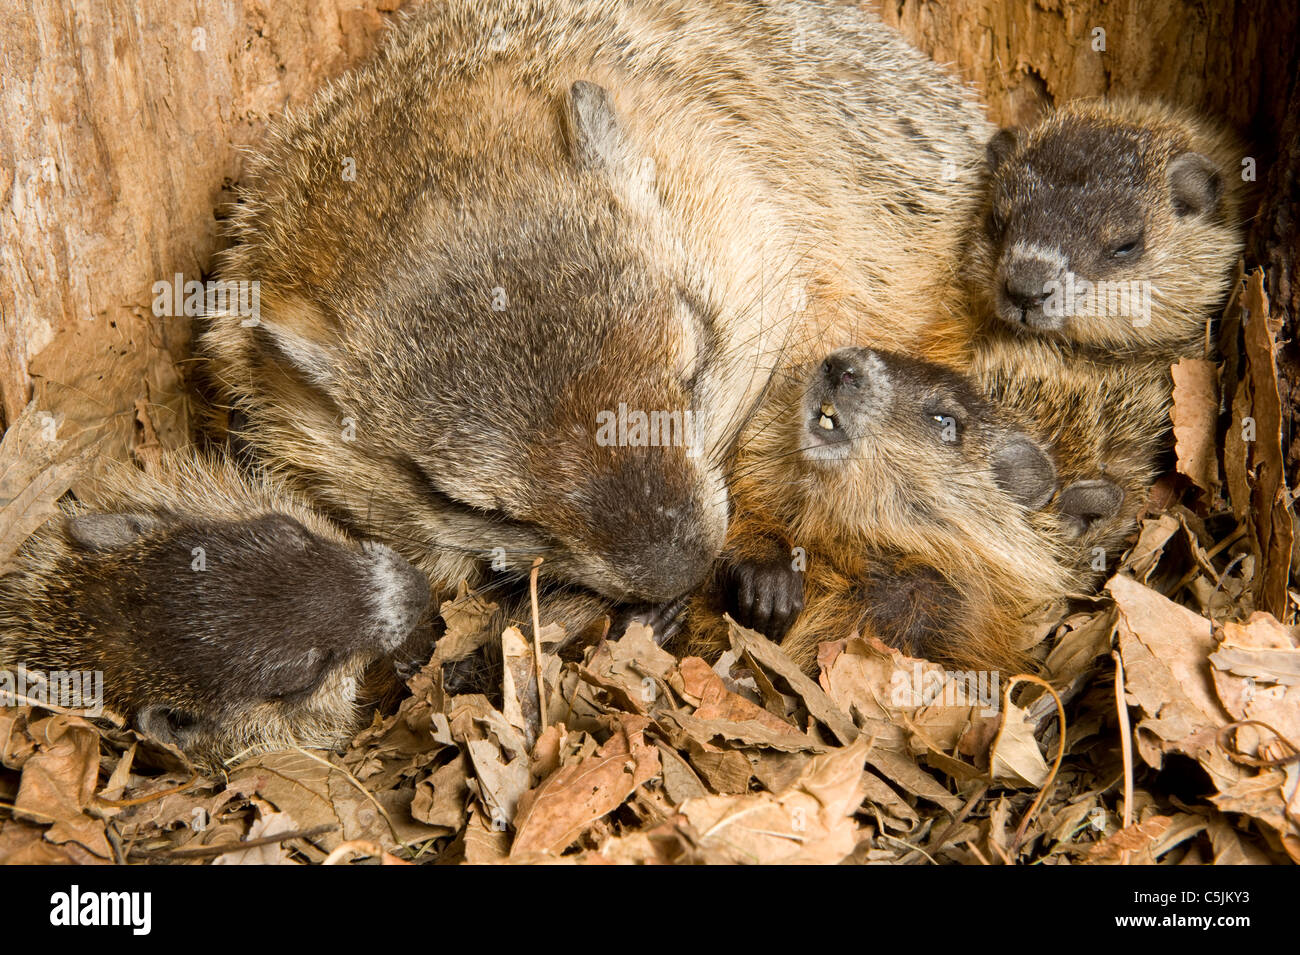 Woodchuck Mother Marmota monax inside den with one-month-old young North AmericaStock Photo